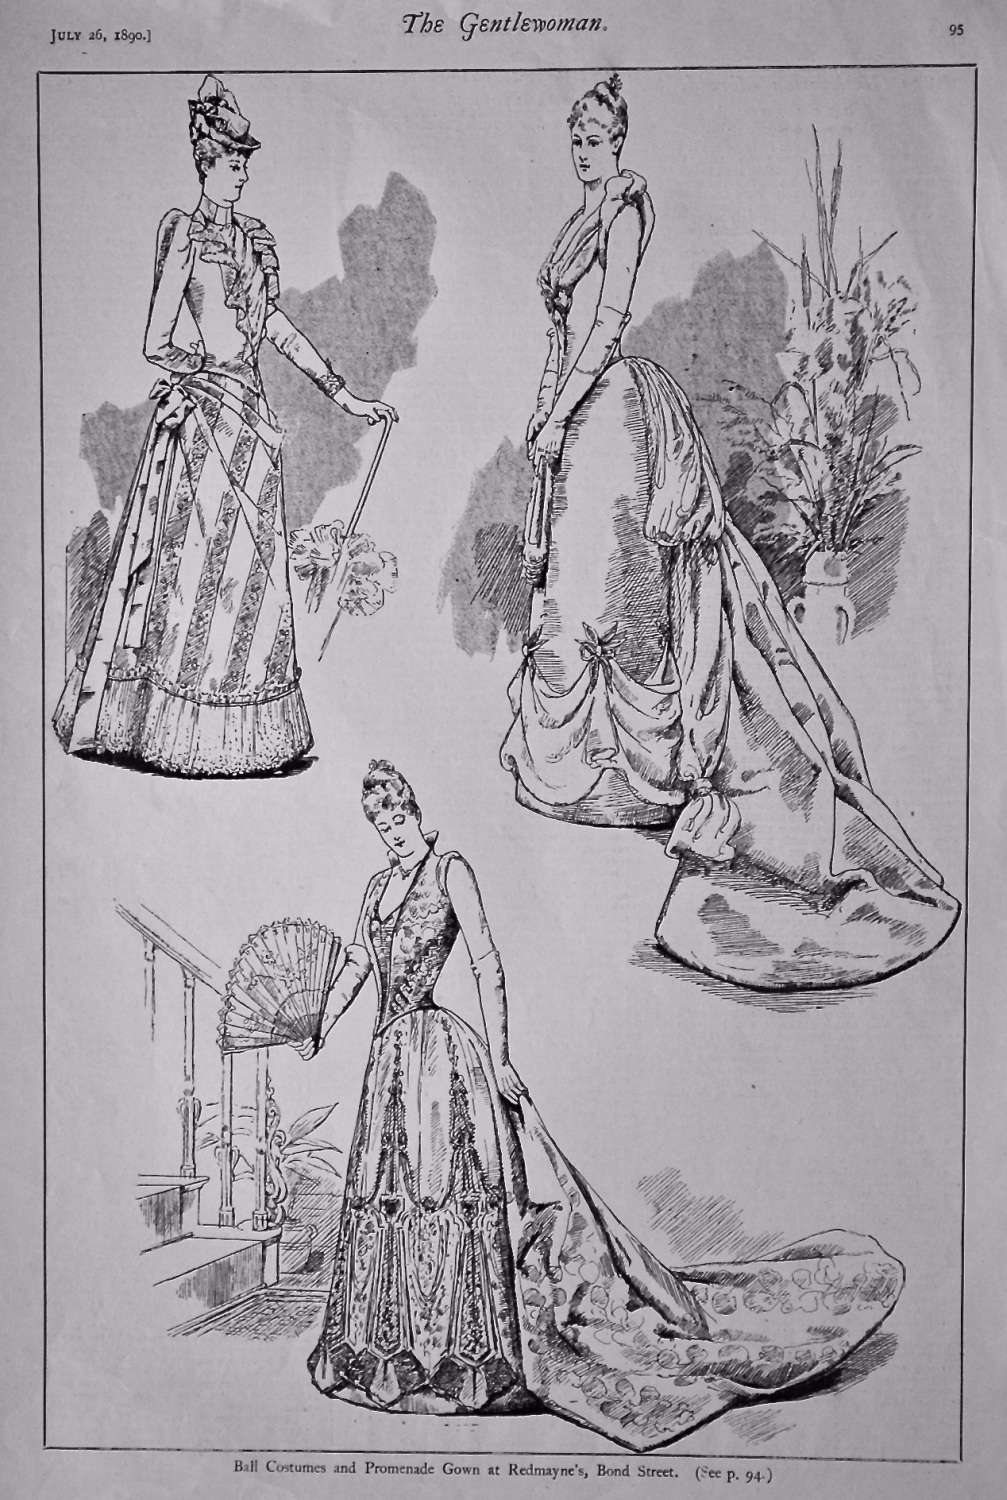 Ball Costumes and Promenade Gown at Redmayne's, Bond Street.  1890.